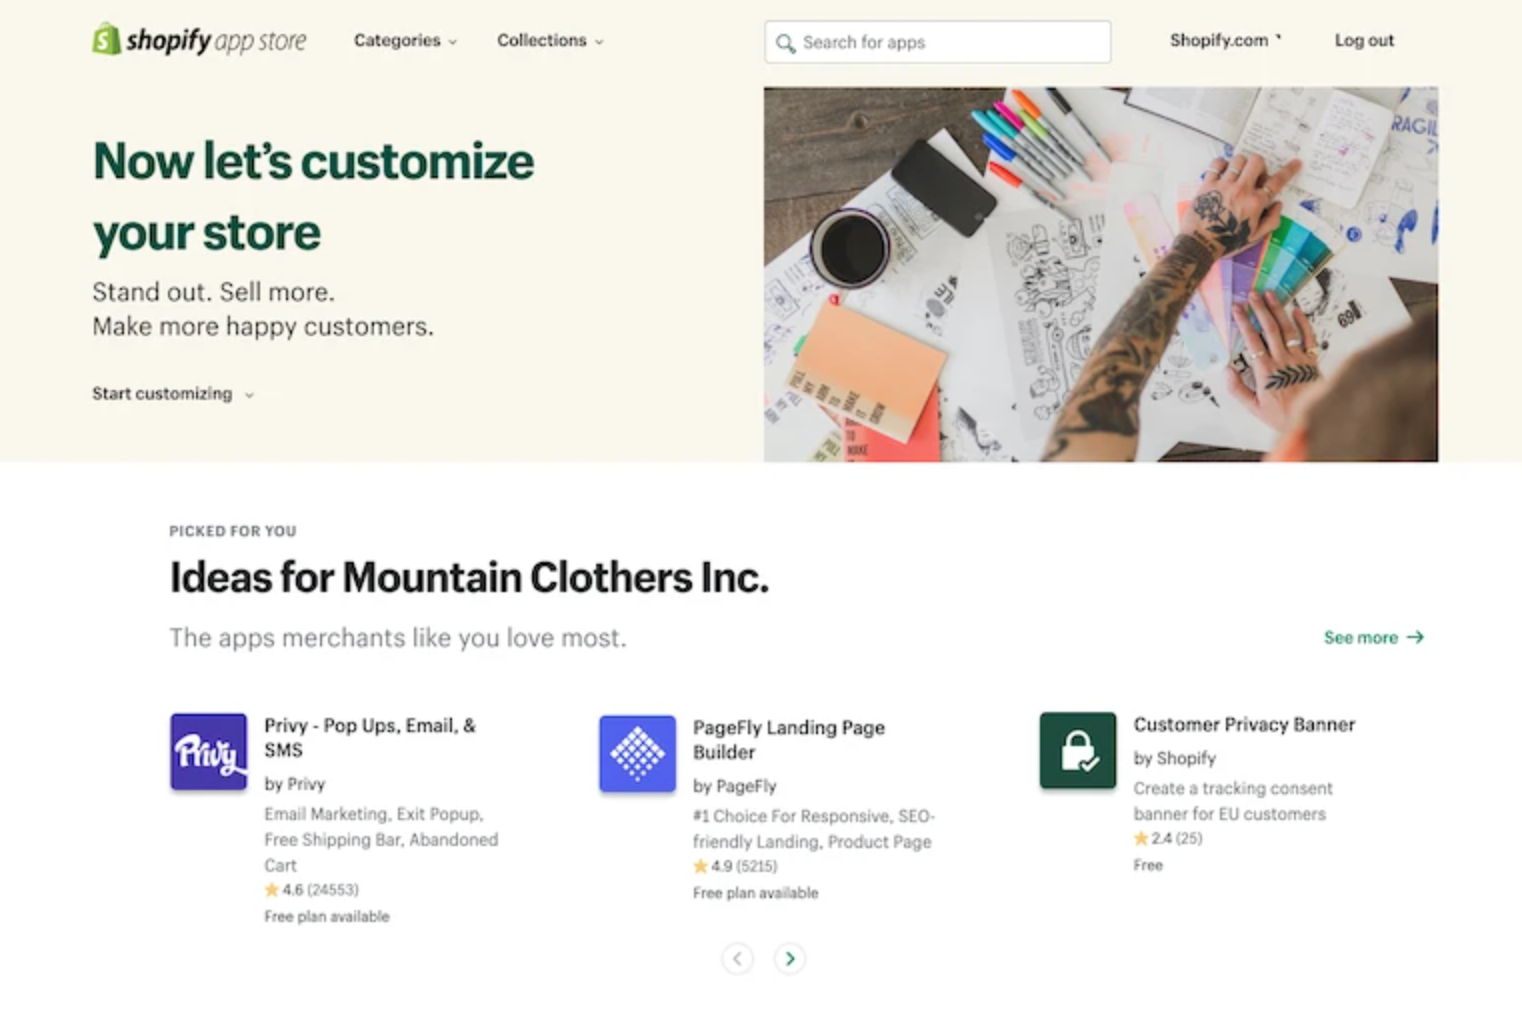 New personalized app store shopify unite 2021